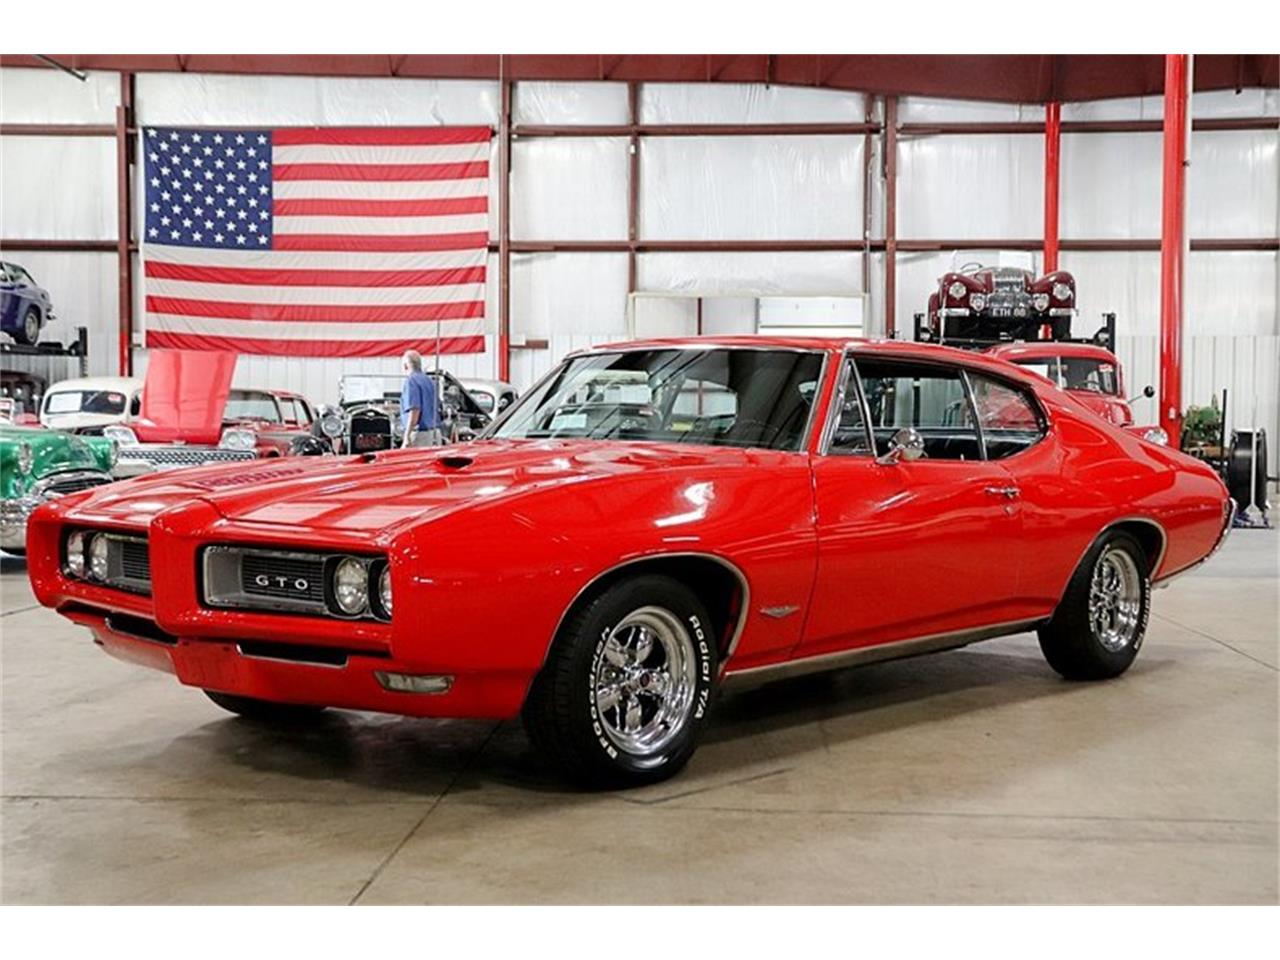 For Sale: 1968 Pontiac GTO in Kentwood, Michigan